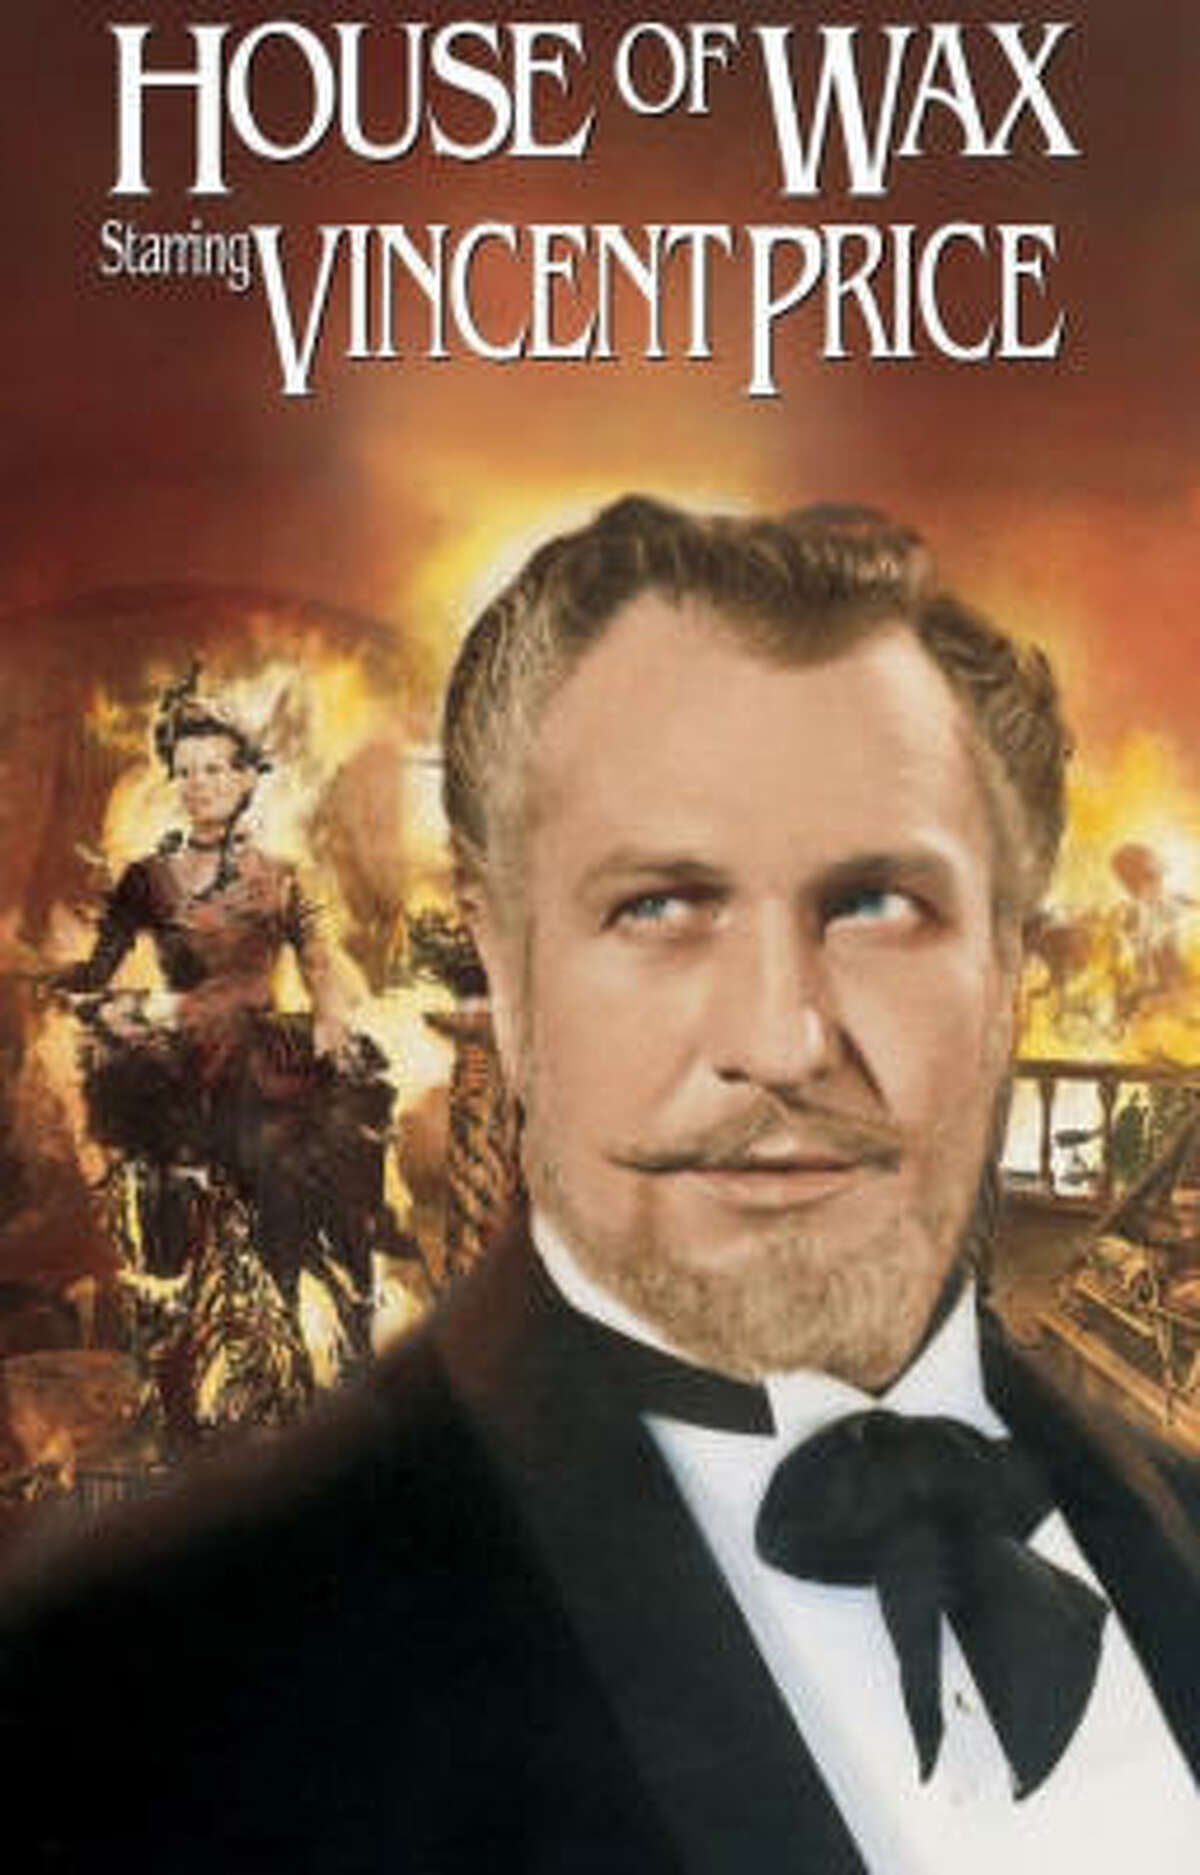 Though House of Wax, starring Vincent Price, was the first 3-D film with a stereophonic soundtrack. It also helped Price launch his career as a master of the spooky.